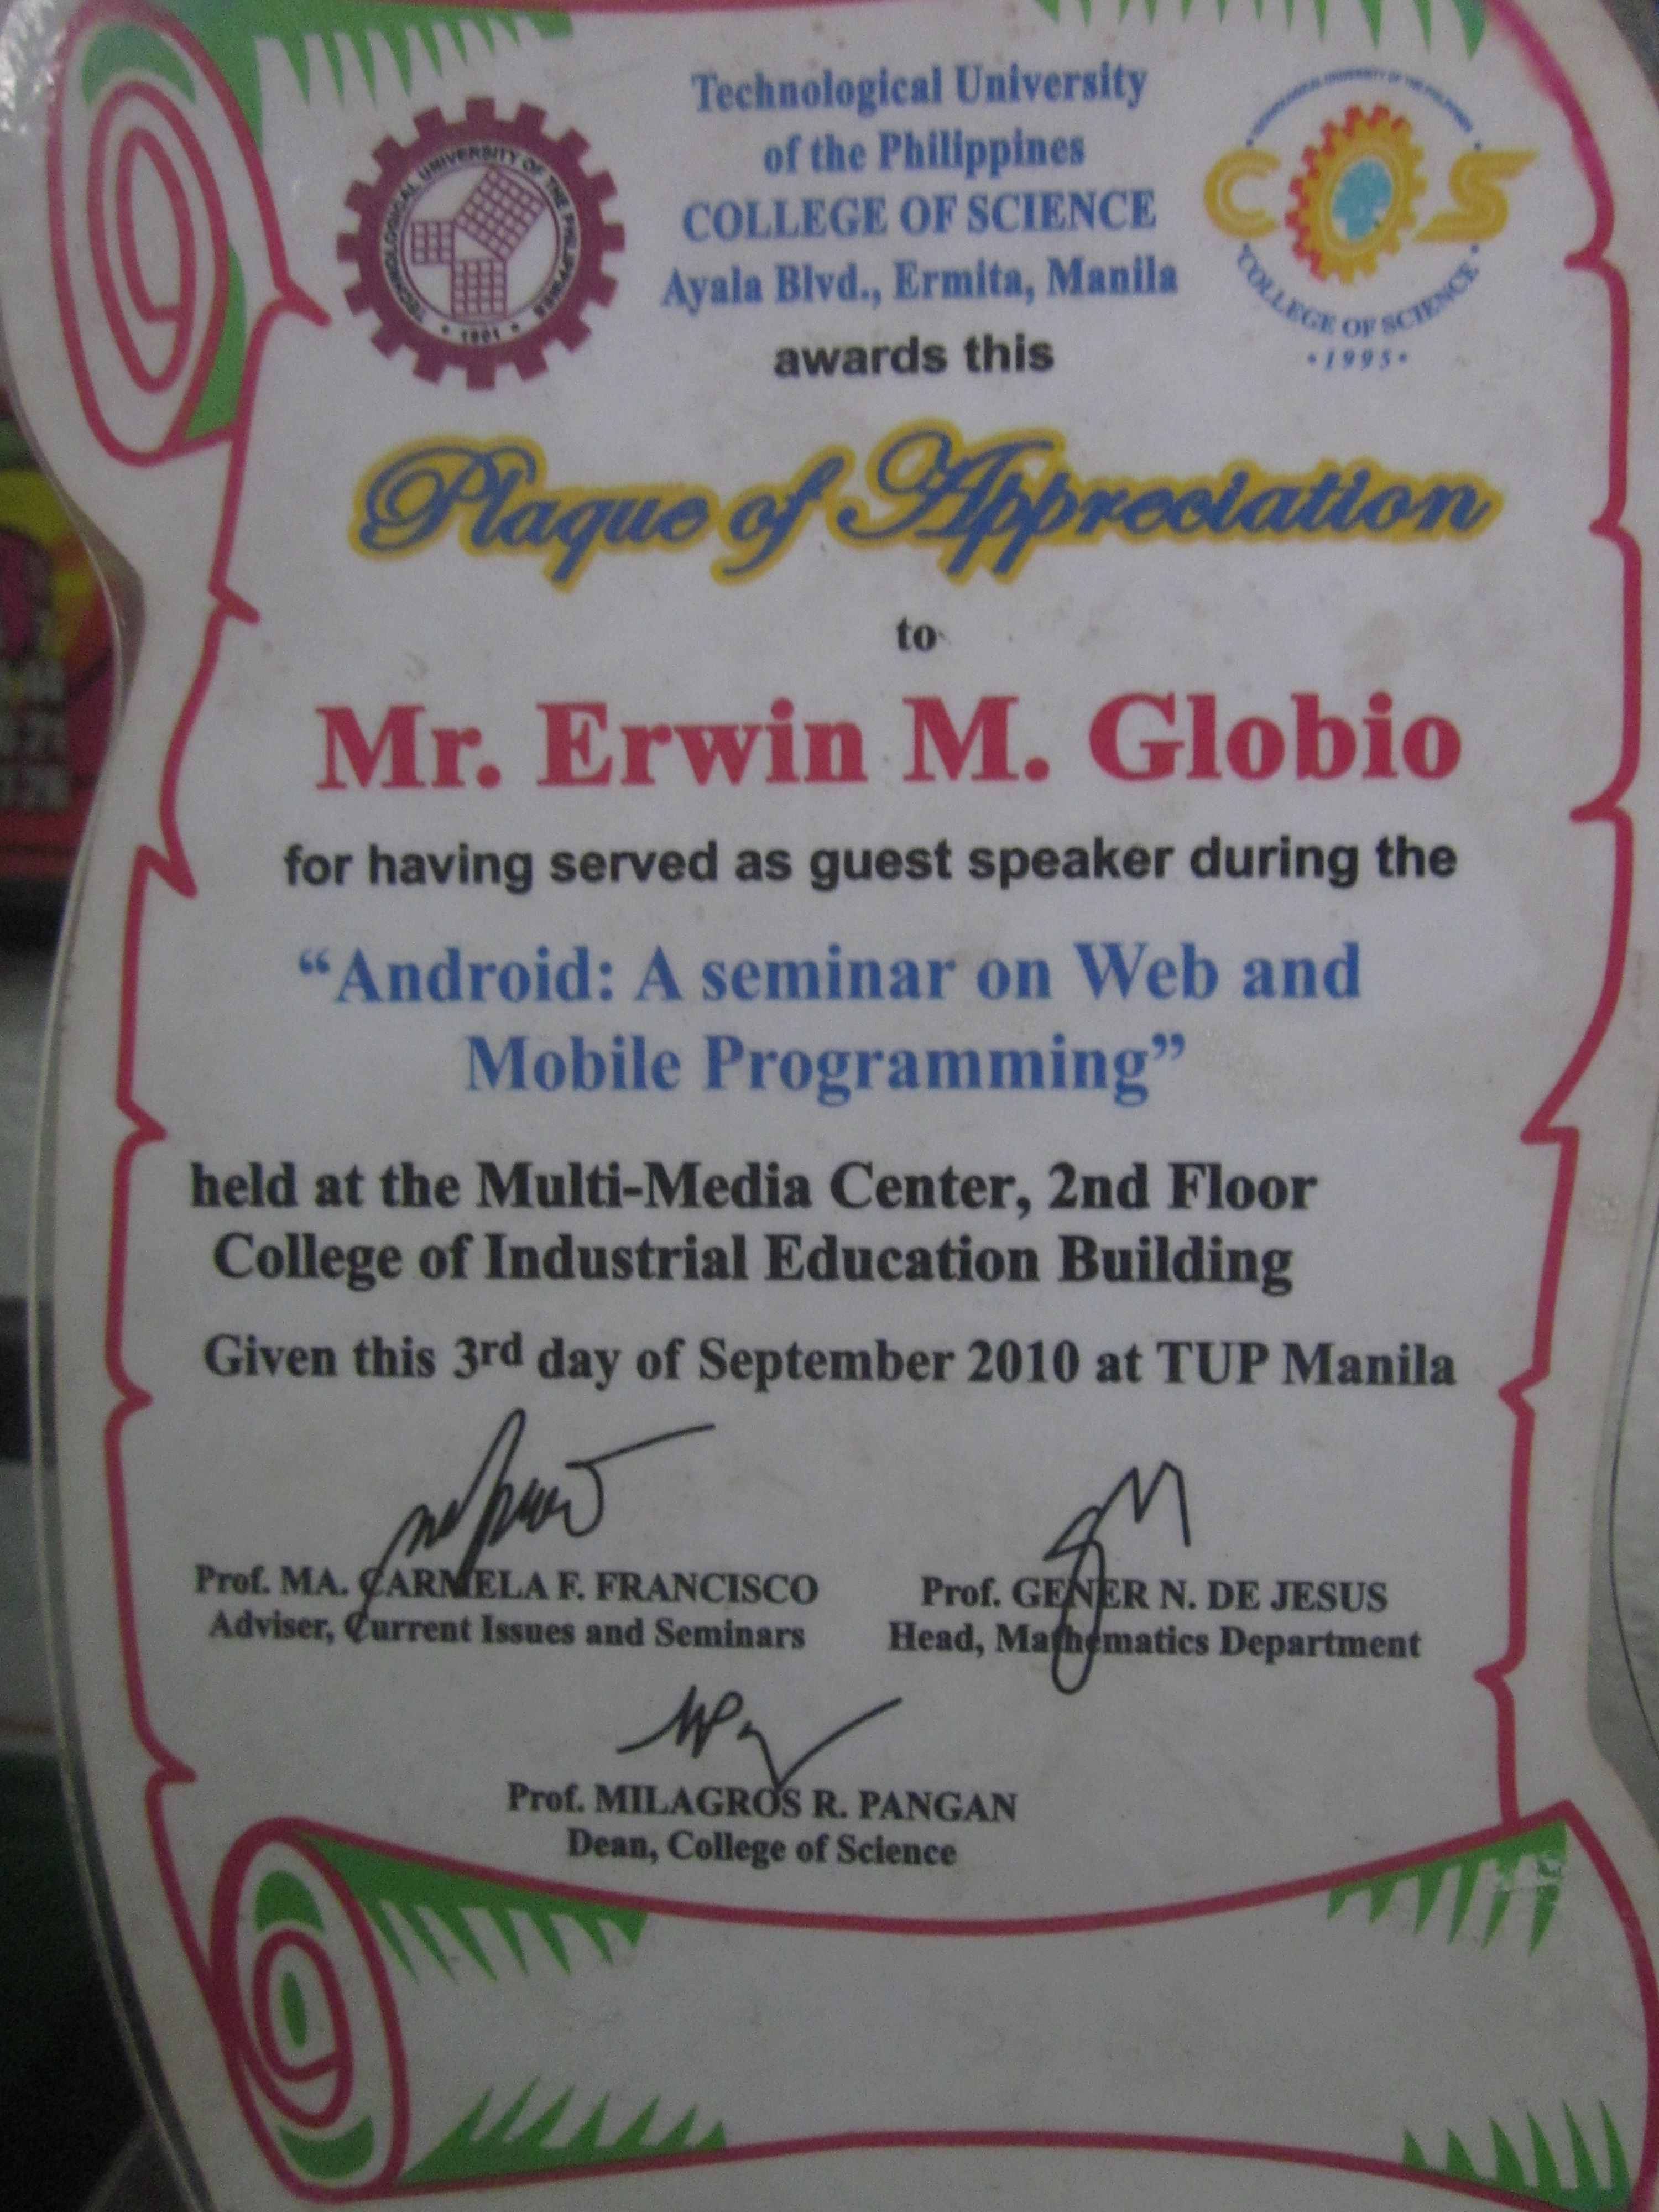 Prof erwin globios certificate of appreciation http erwin globios certificate of appreciation httpeglobiotraining yelopaper Image collections